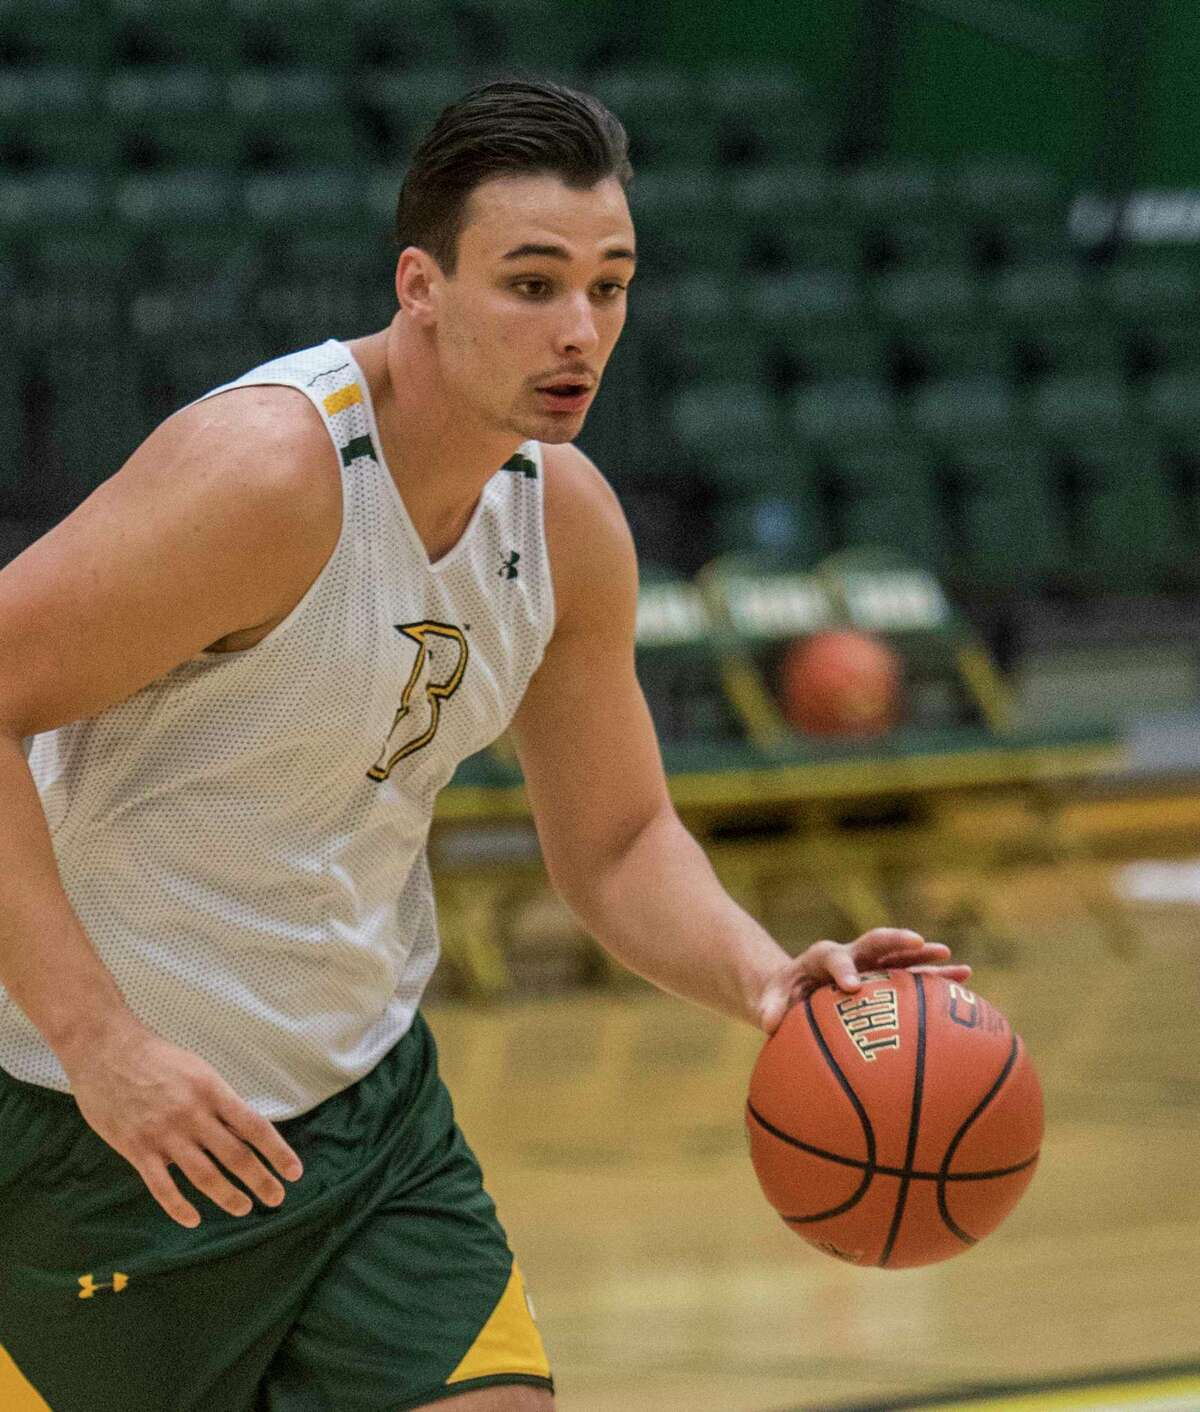 Evan Fisher moves over the court during Siena College's Men's Basketball open workout Friday Oct.12, 2018 in Loudonville, N.Y. (Skip Dickstein/Times Union)